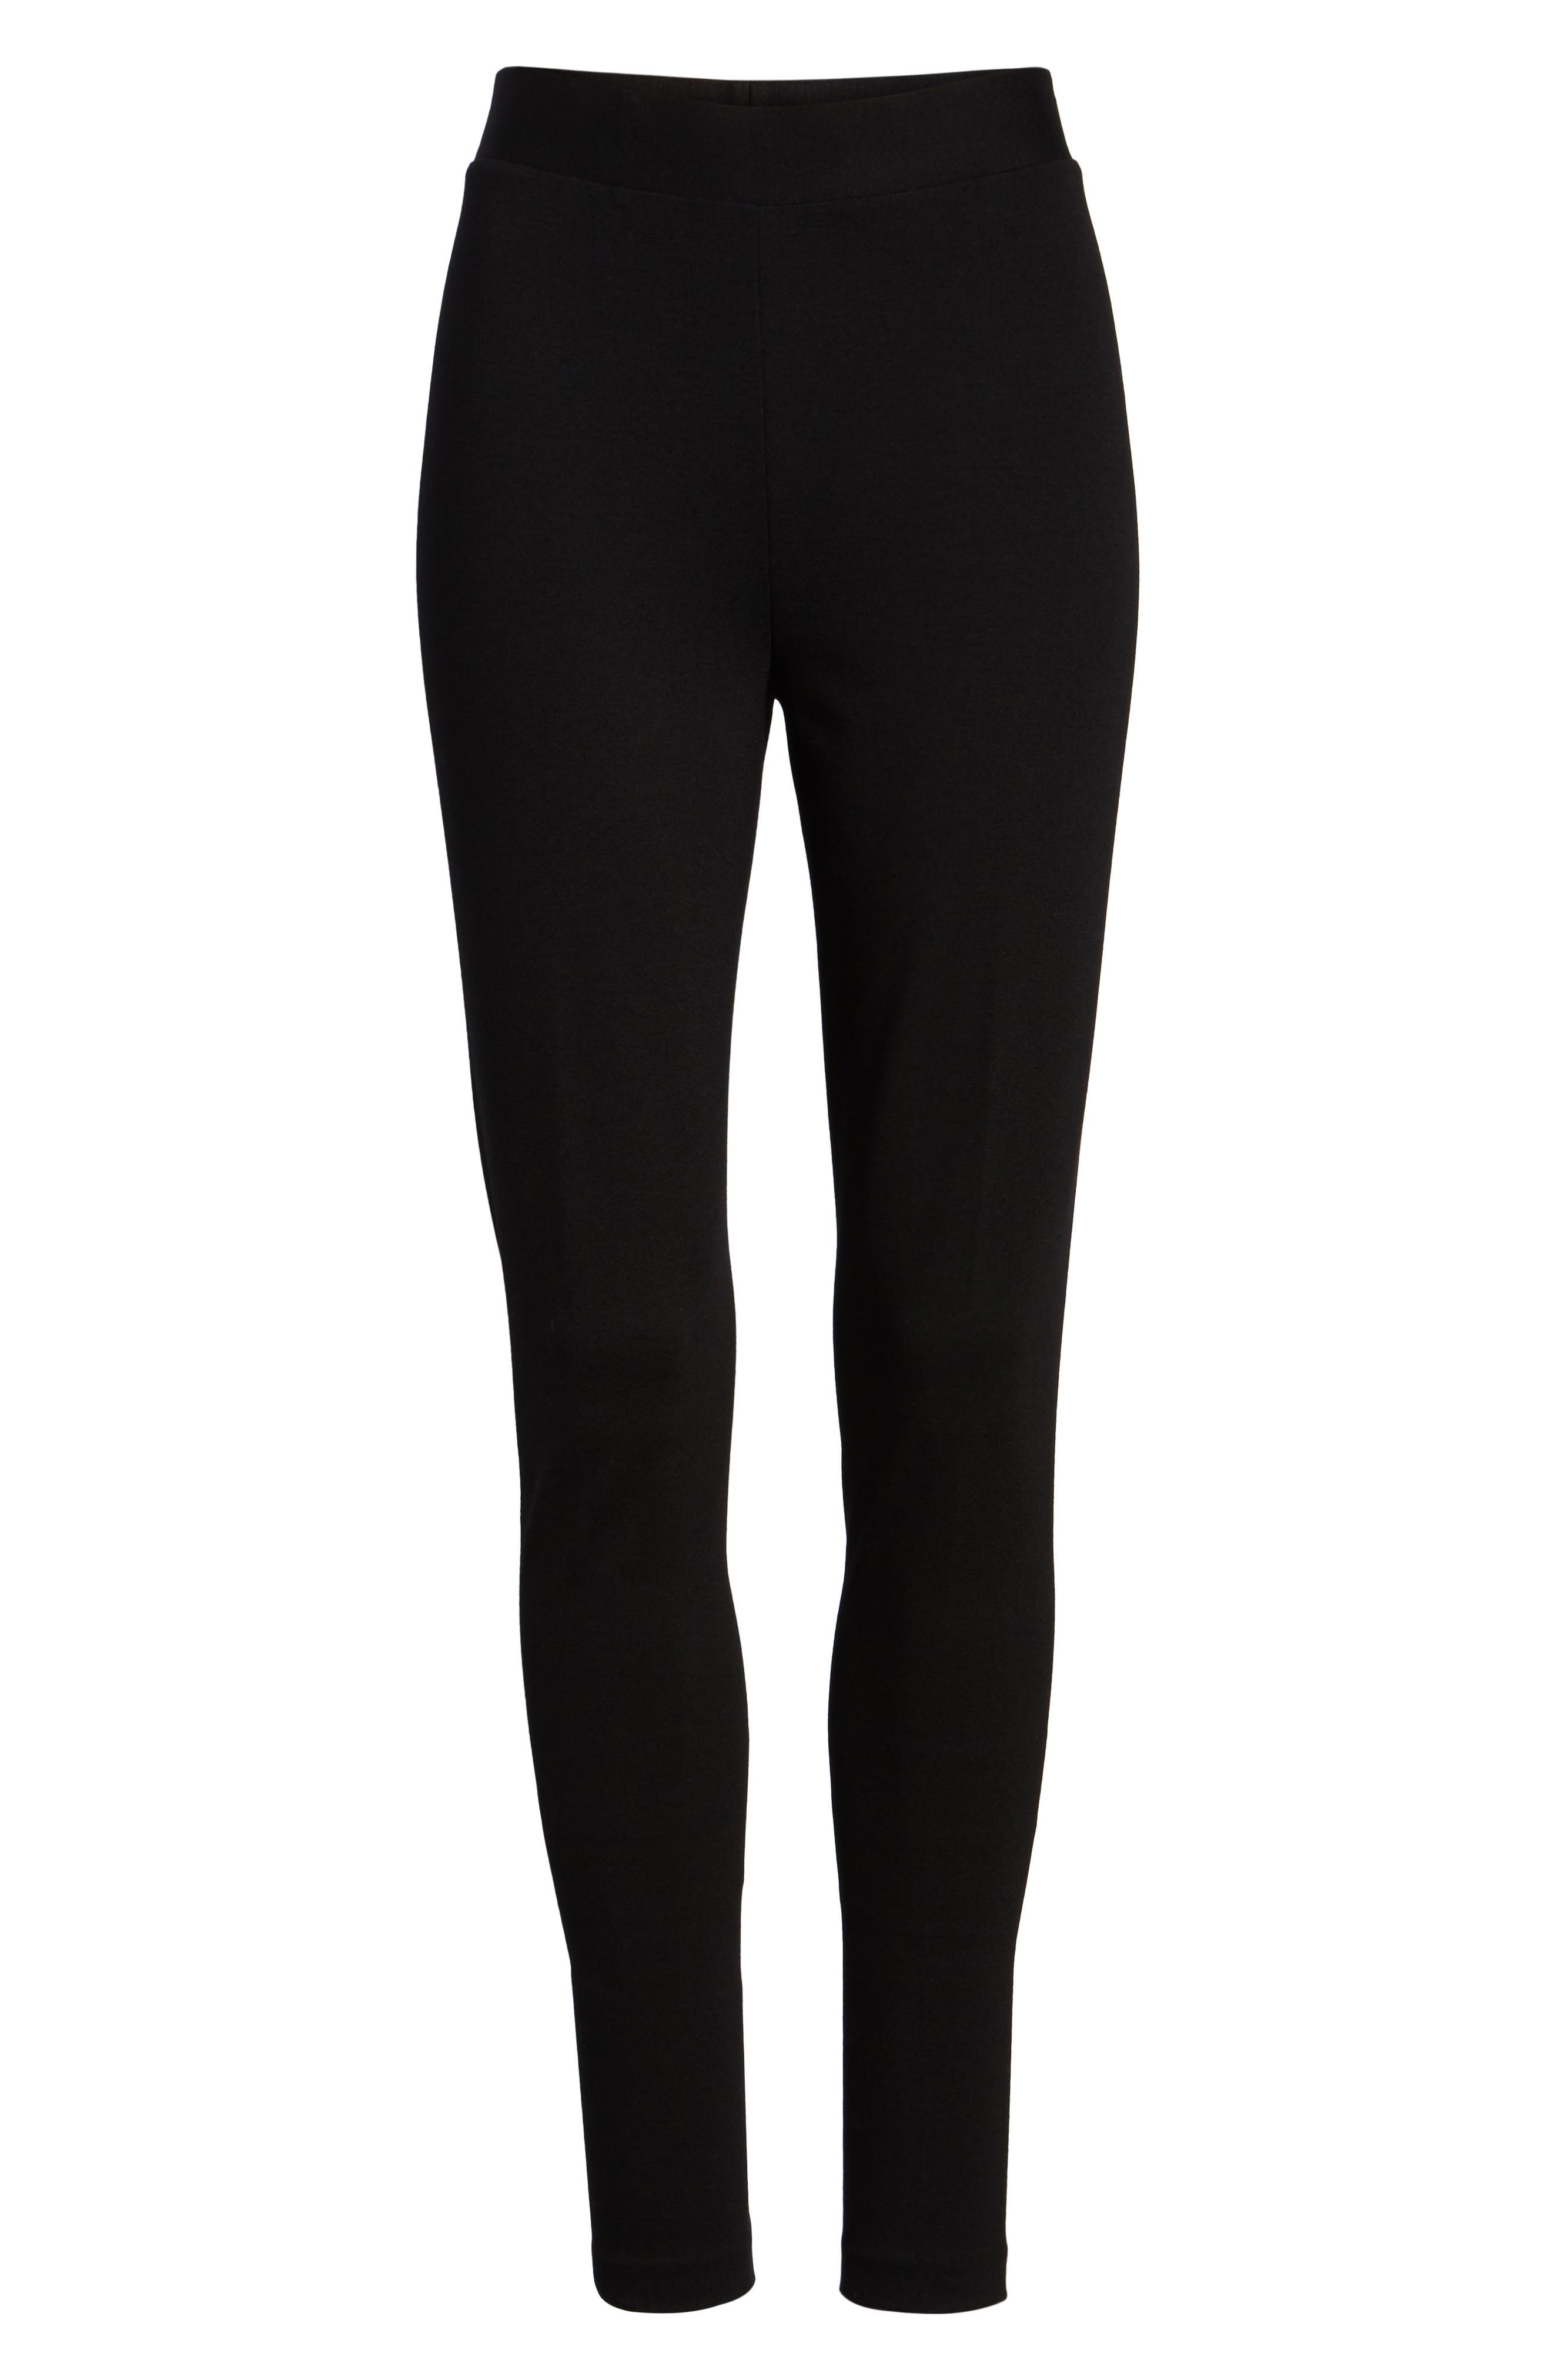 VINCE CAMUTO,                             Two by Vince Camuto Seamed Back Leggings,                             Alternate thumbnail 7, color,                             RICH BLACK